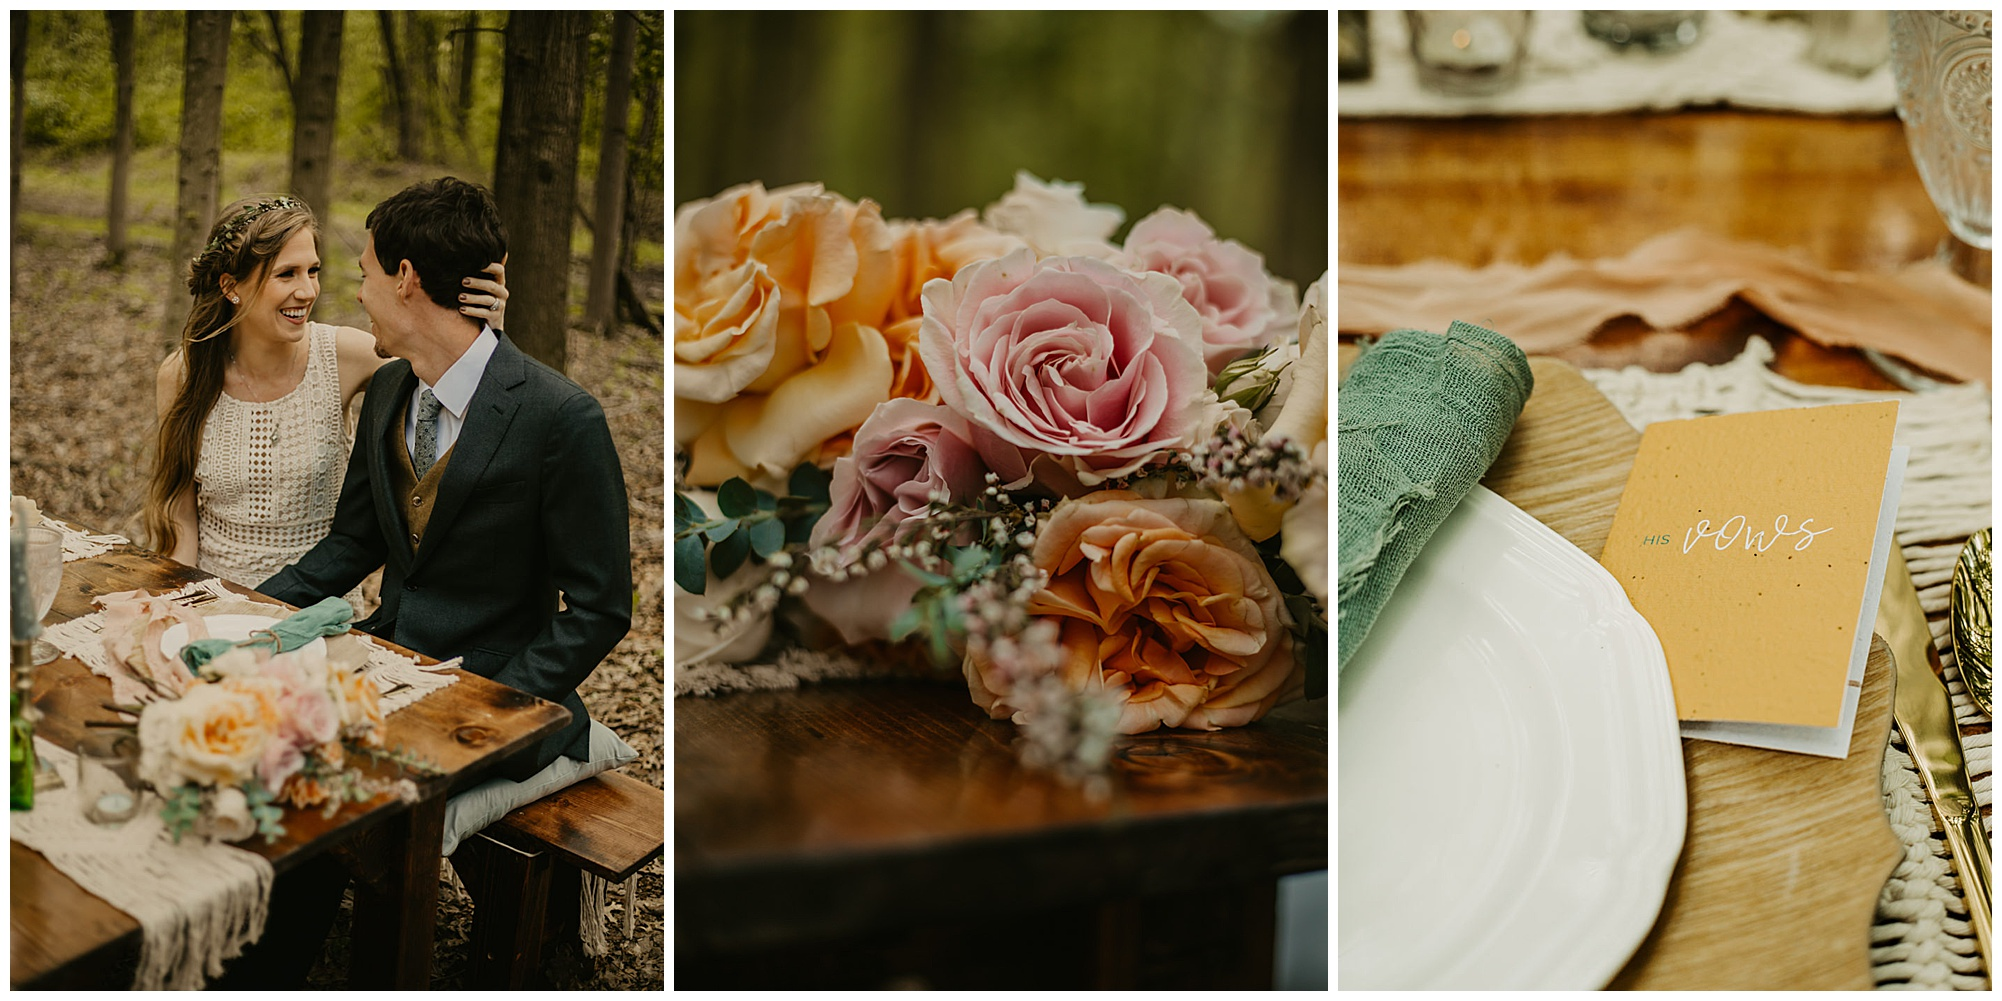 orange peach and pink florals with wedding cake and boho style and ecofriendly wedding theme at prancing deer farm. outdoor natural sustainable venue in warwick md